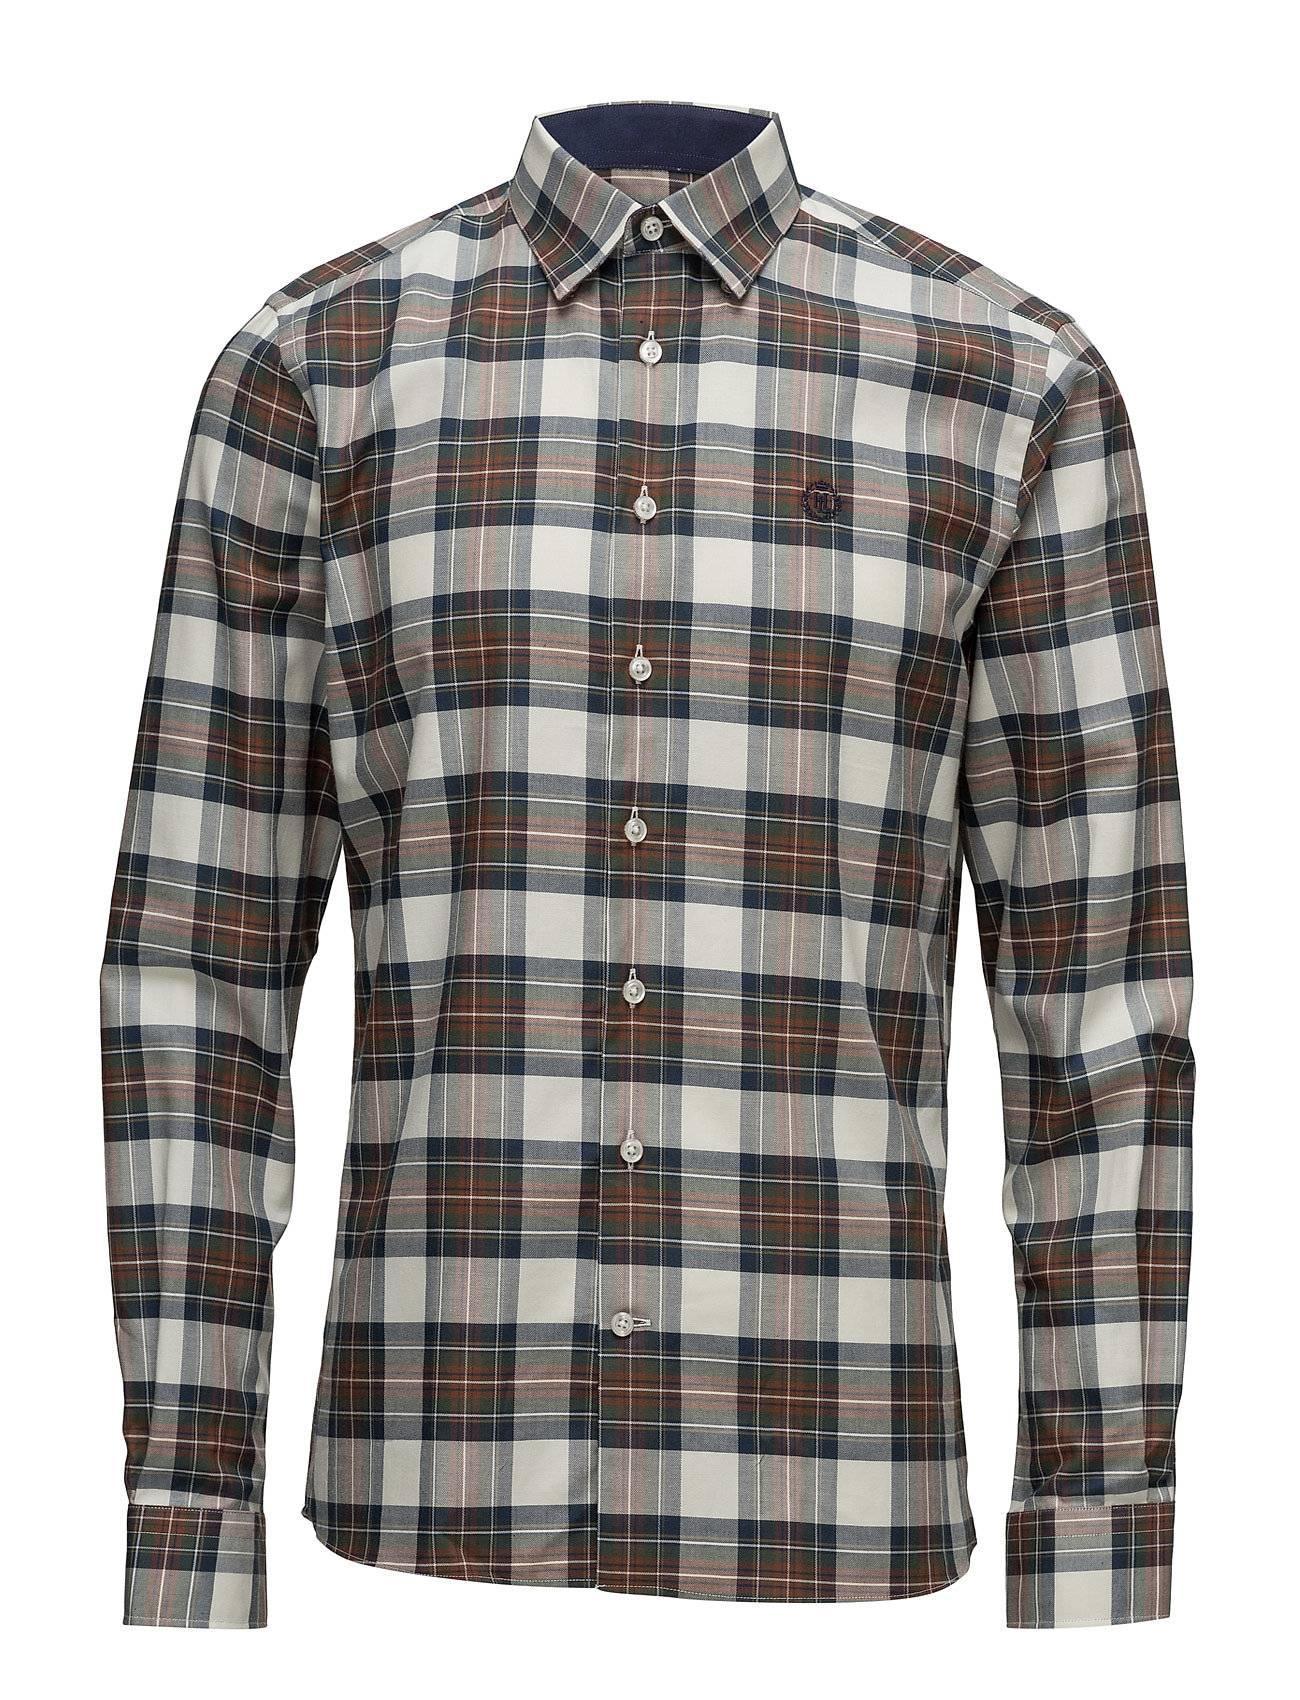 Henri Lloyd Hl Shirt Flannel Checkered